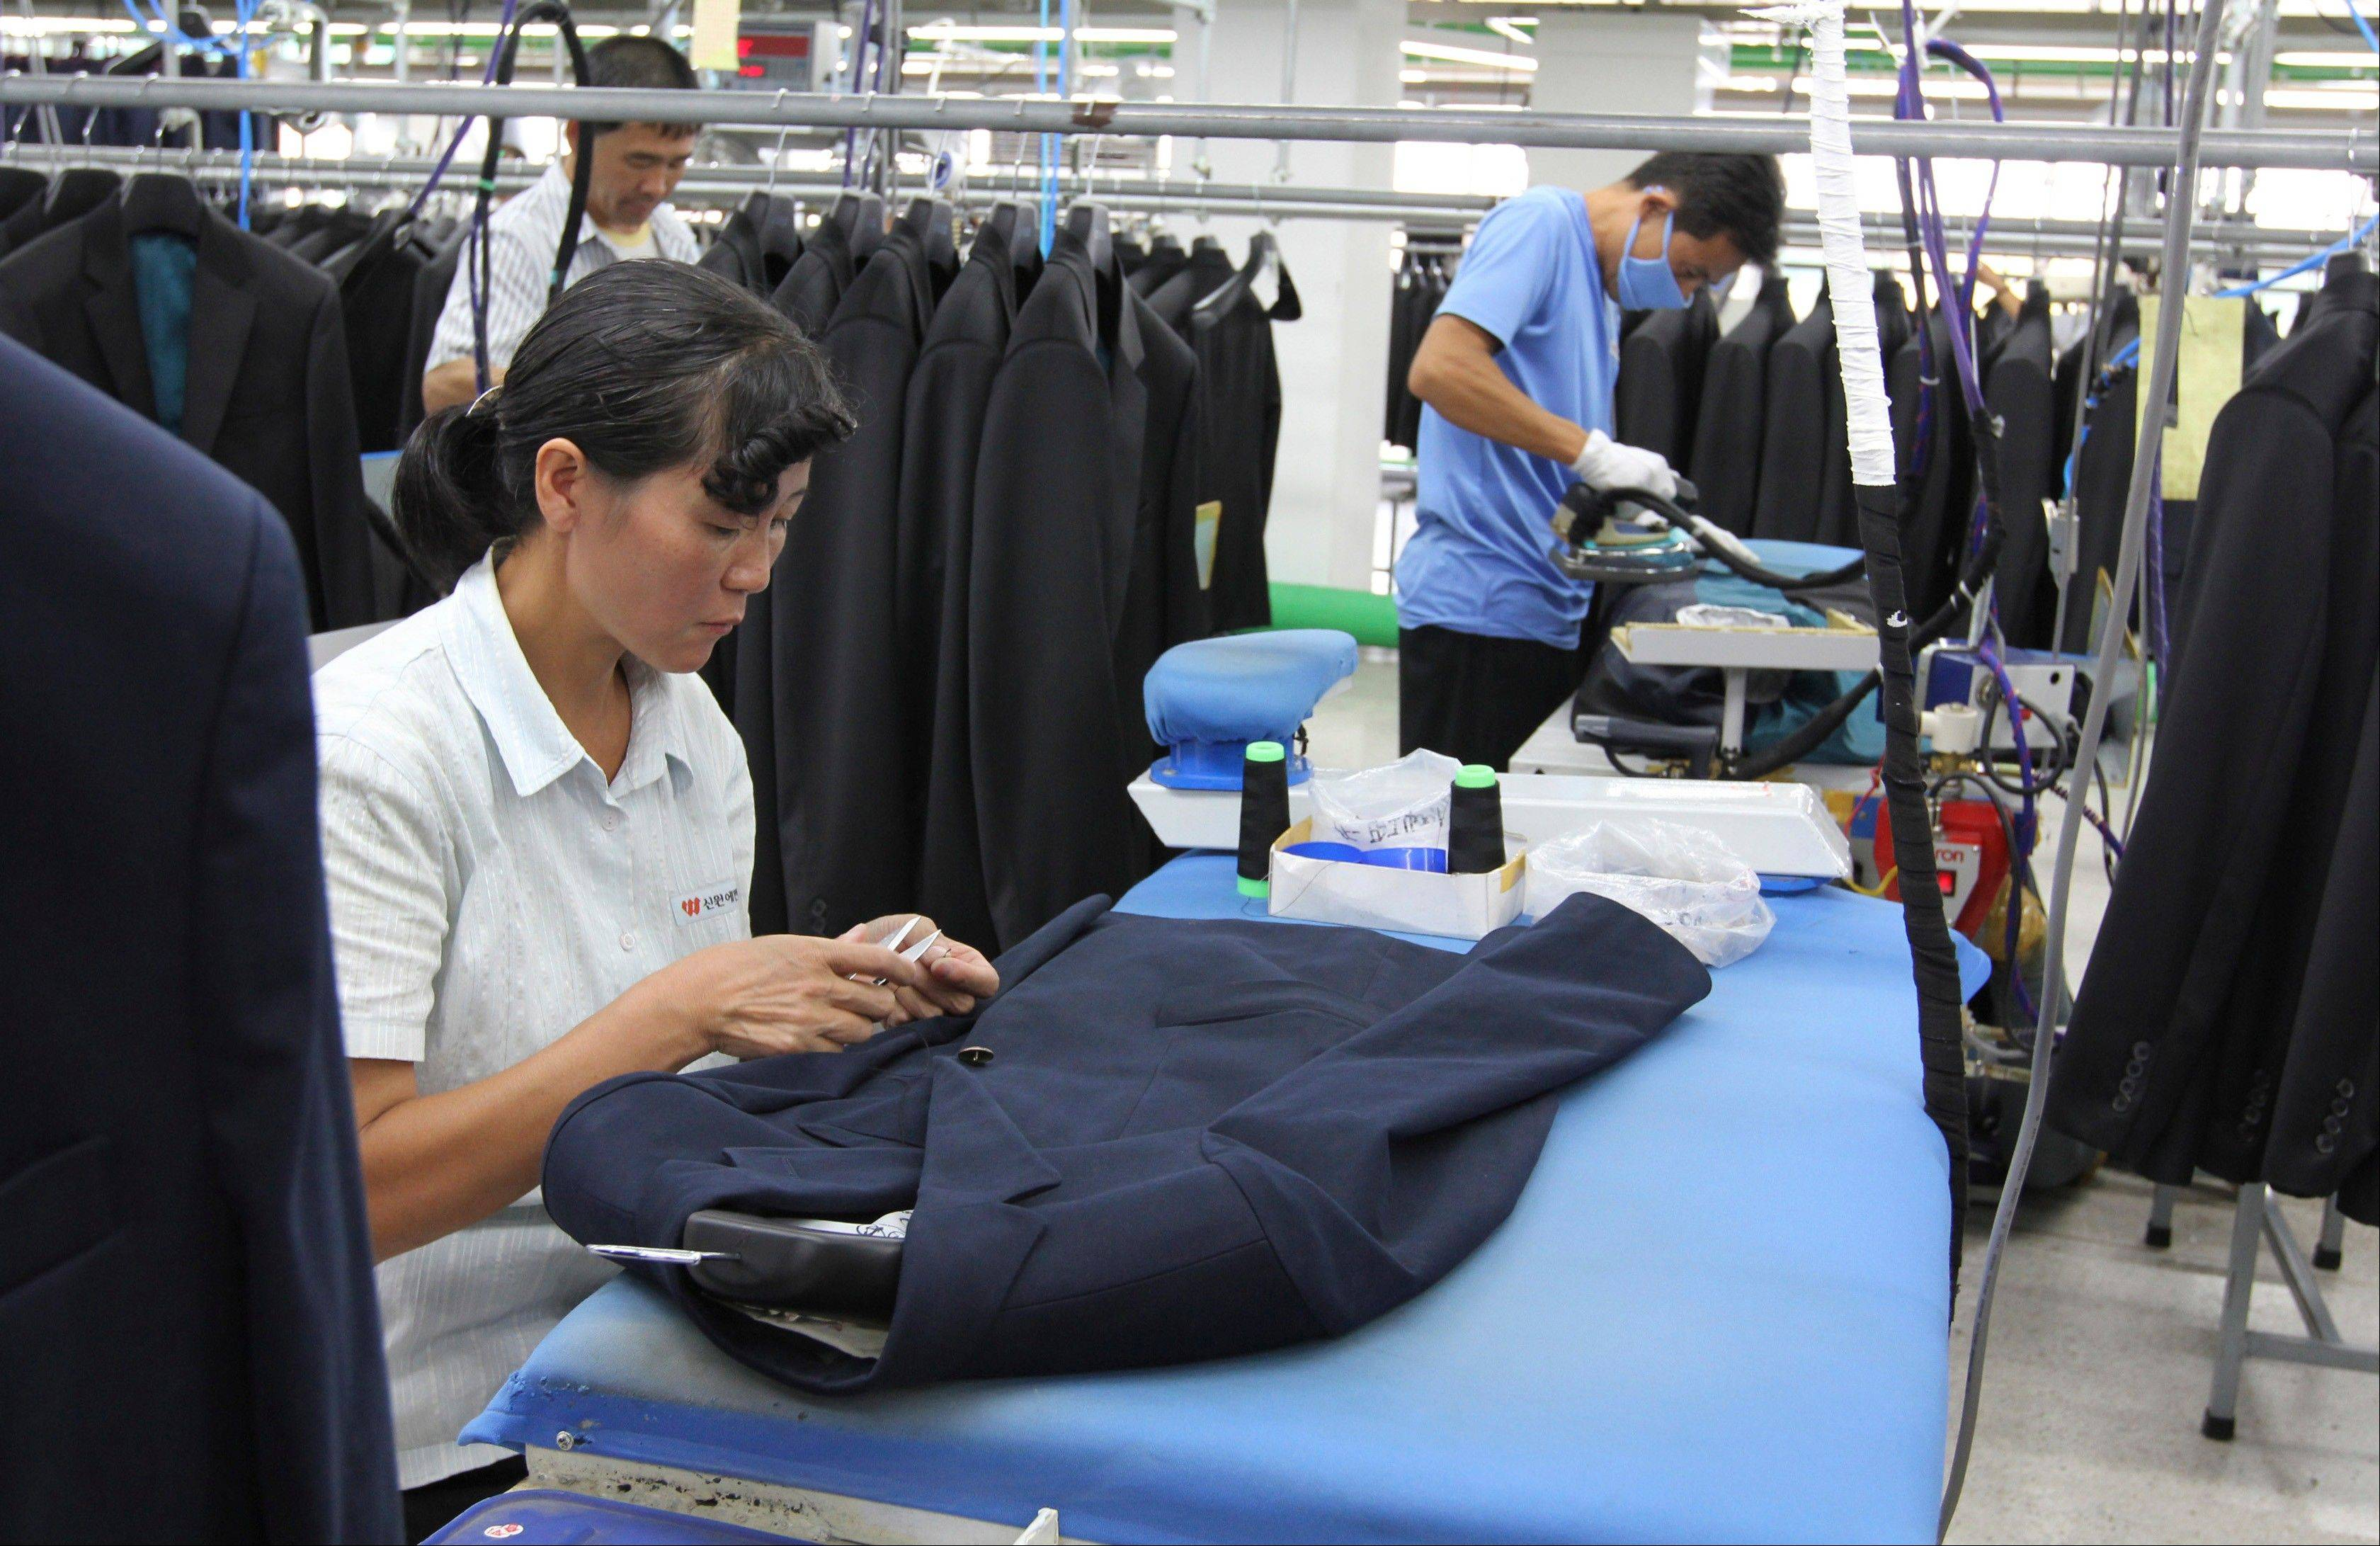 A North Korean woman sews a button on a suit at a factory in Kaesong, North Korea, run by ShinWon, a South Korean clothing maker. A few hundred South Korean managers, some wandering among quiet assembly lines, were all that remained Tuesday at the massive industrial park run by the rival Koreas after North Korea pulled its more than 50,000 workers from the complex.